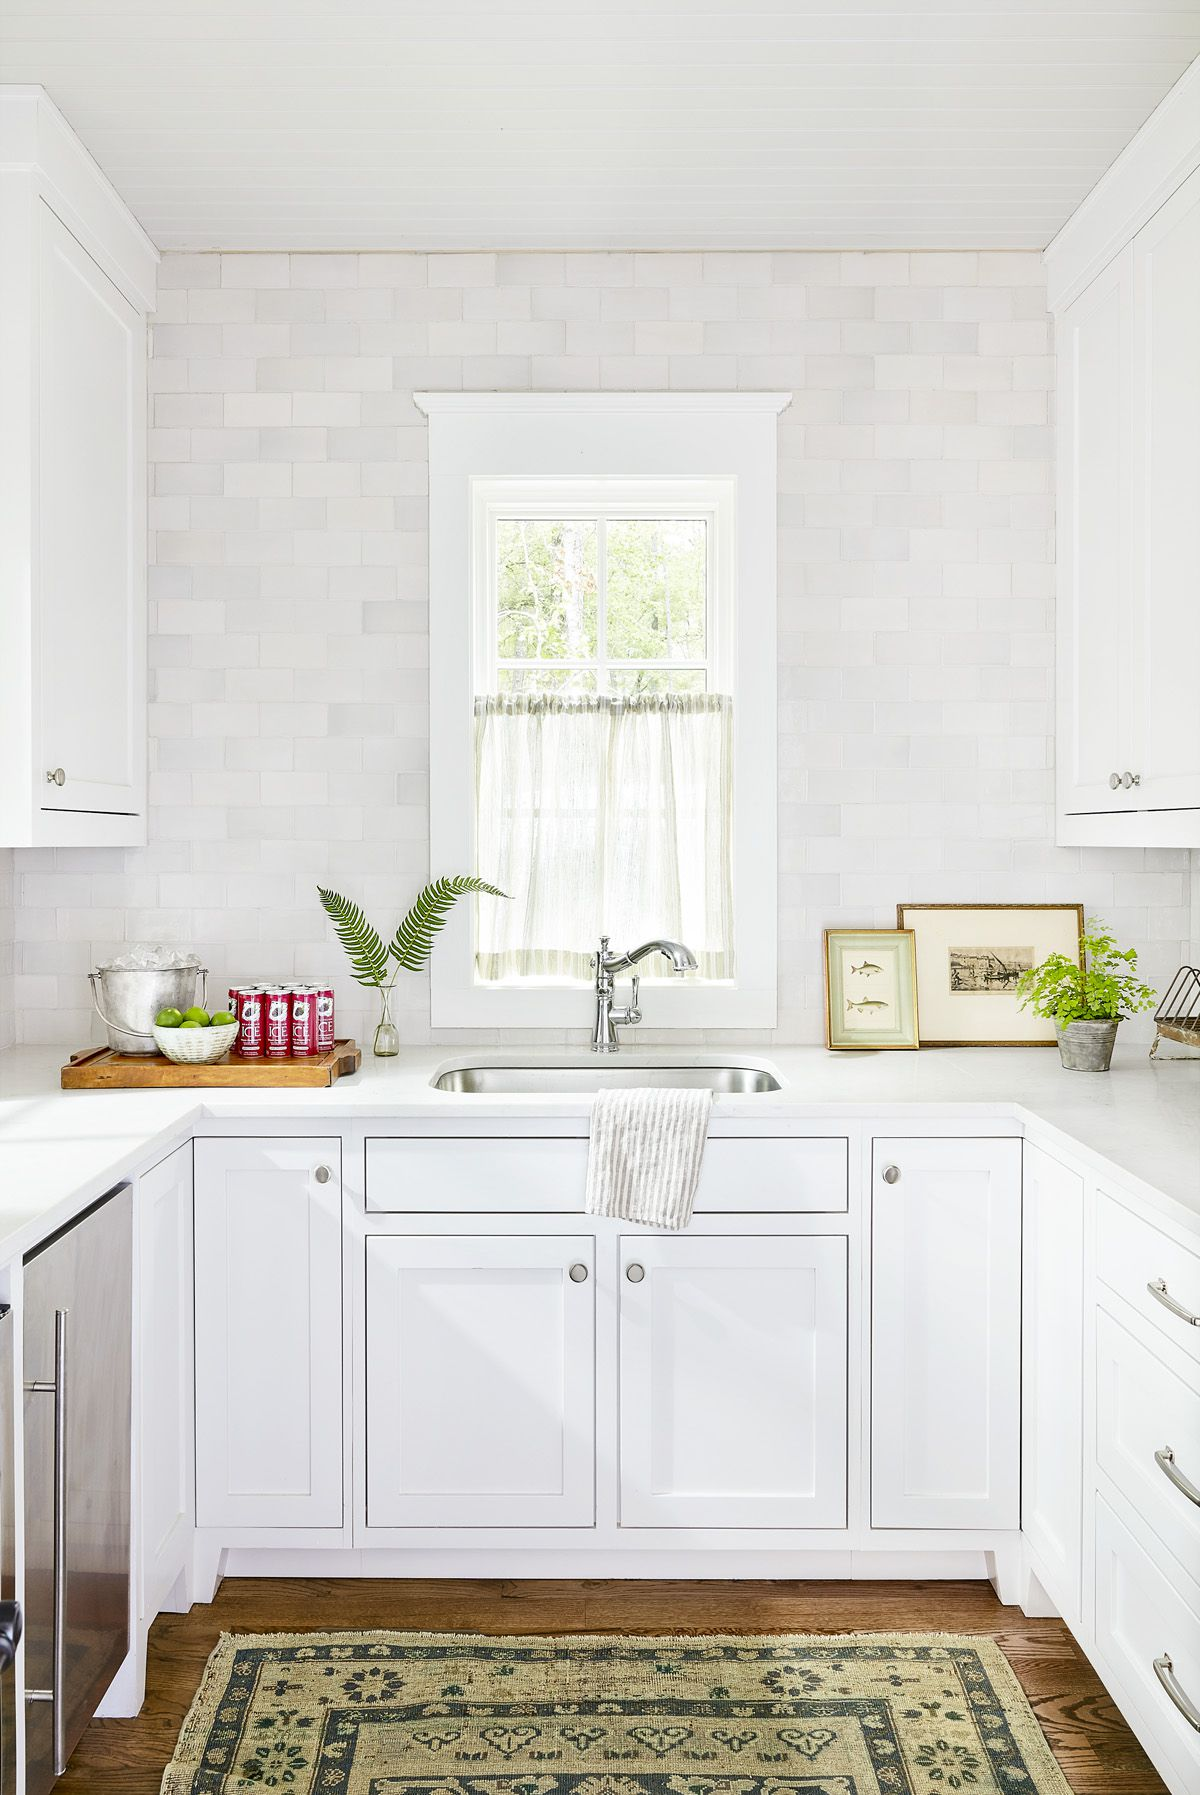 White kitchens 24 best white kitchens - pictures of white kitchen design ideas MGIWGDQ